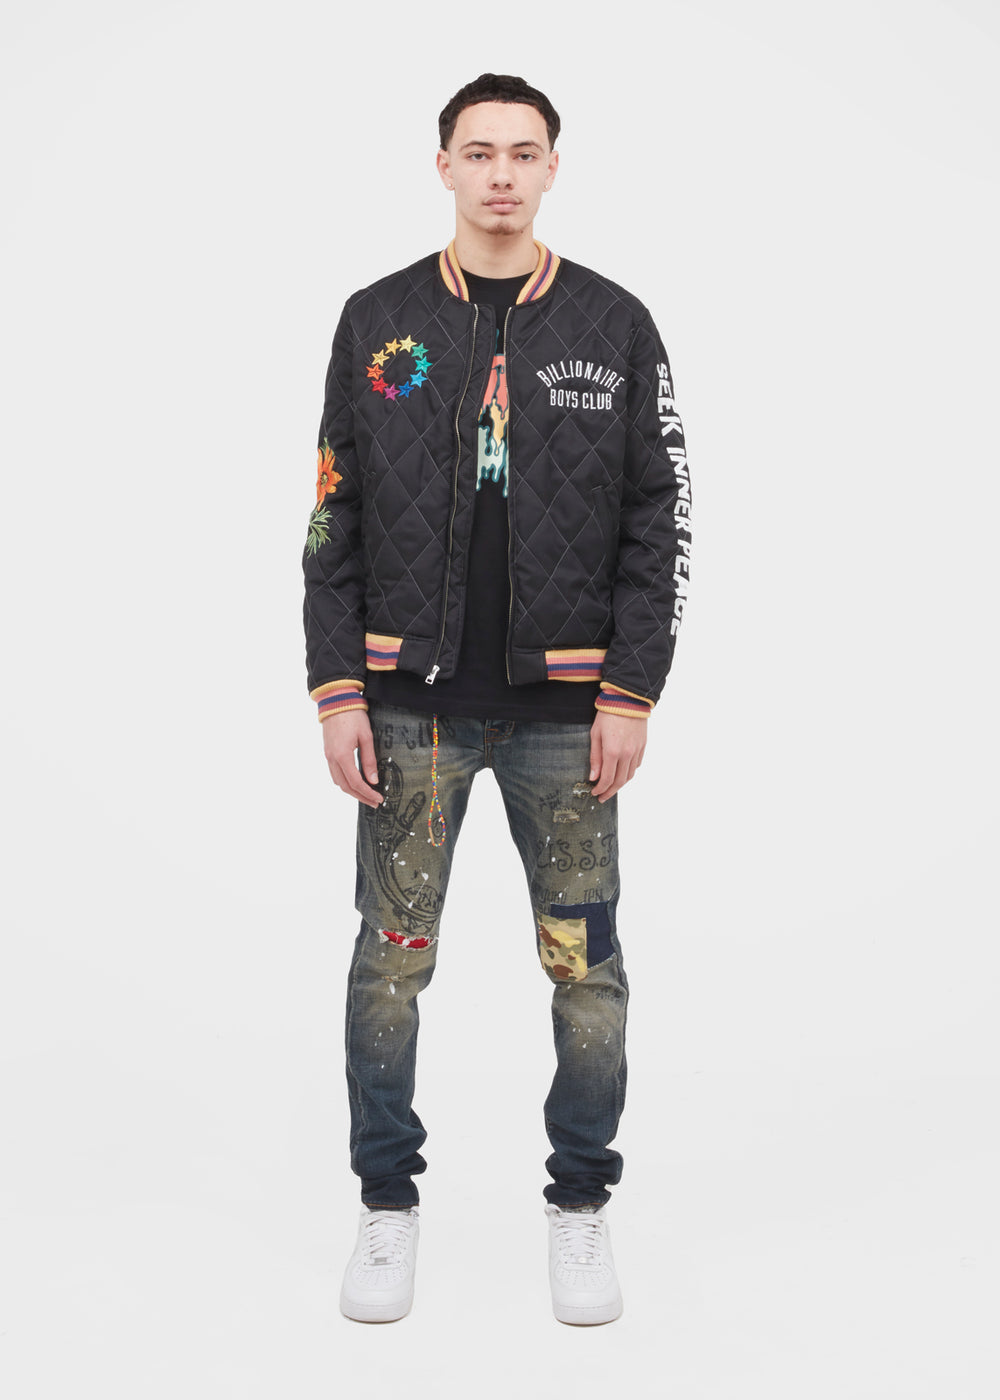 billionaire-boys-club-bbc-inner-pc-jkt-801-1401-blk-4